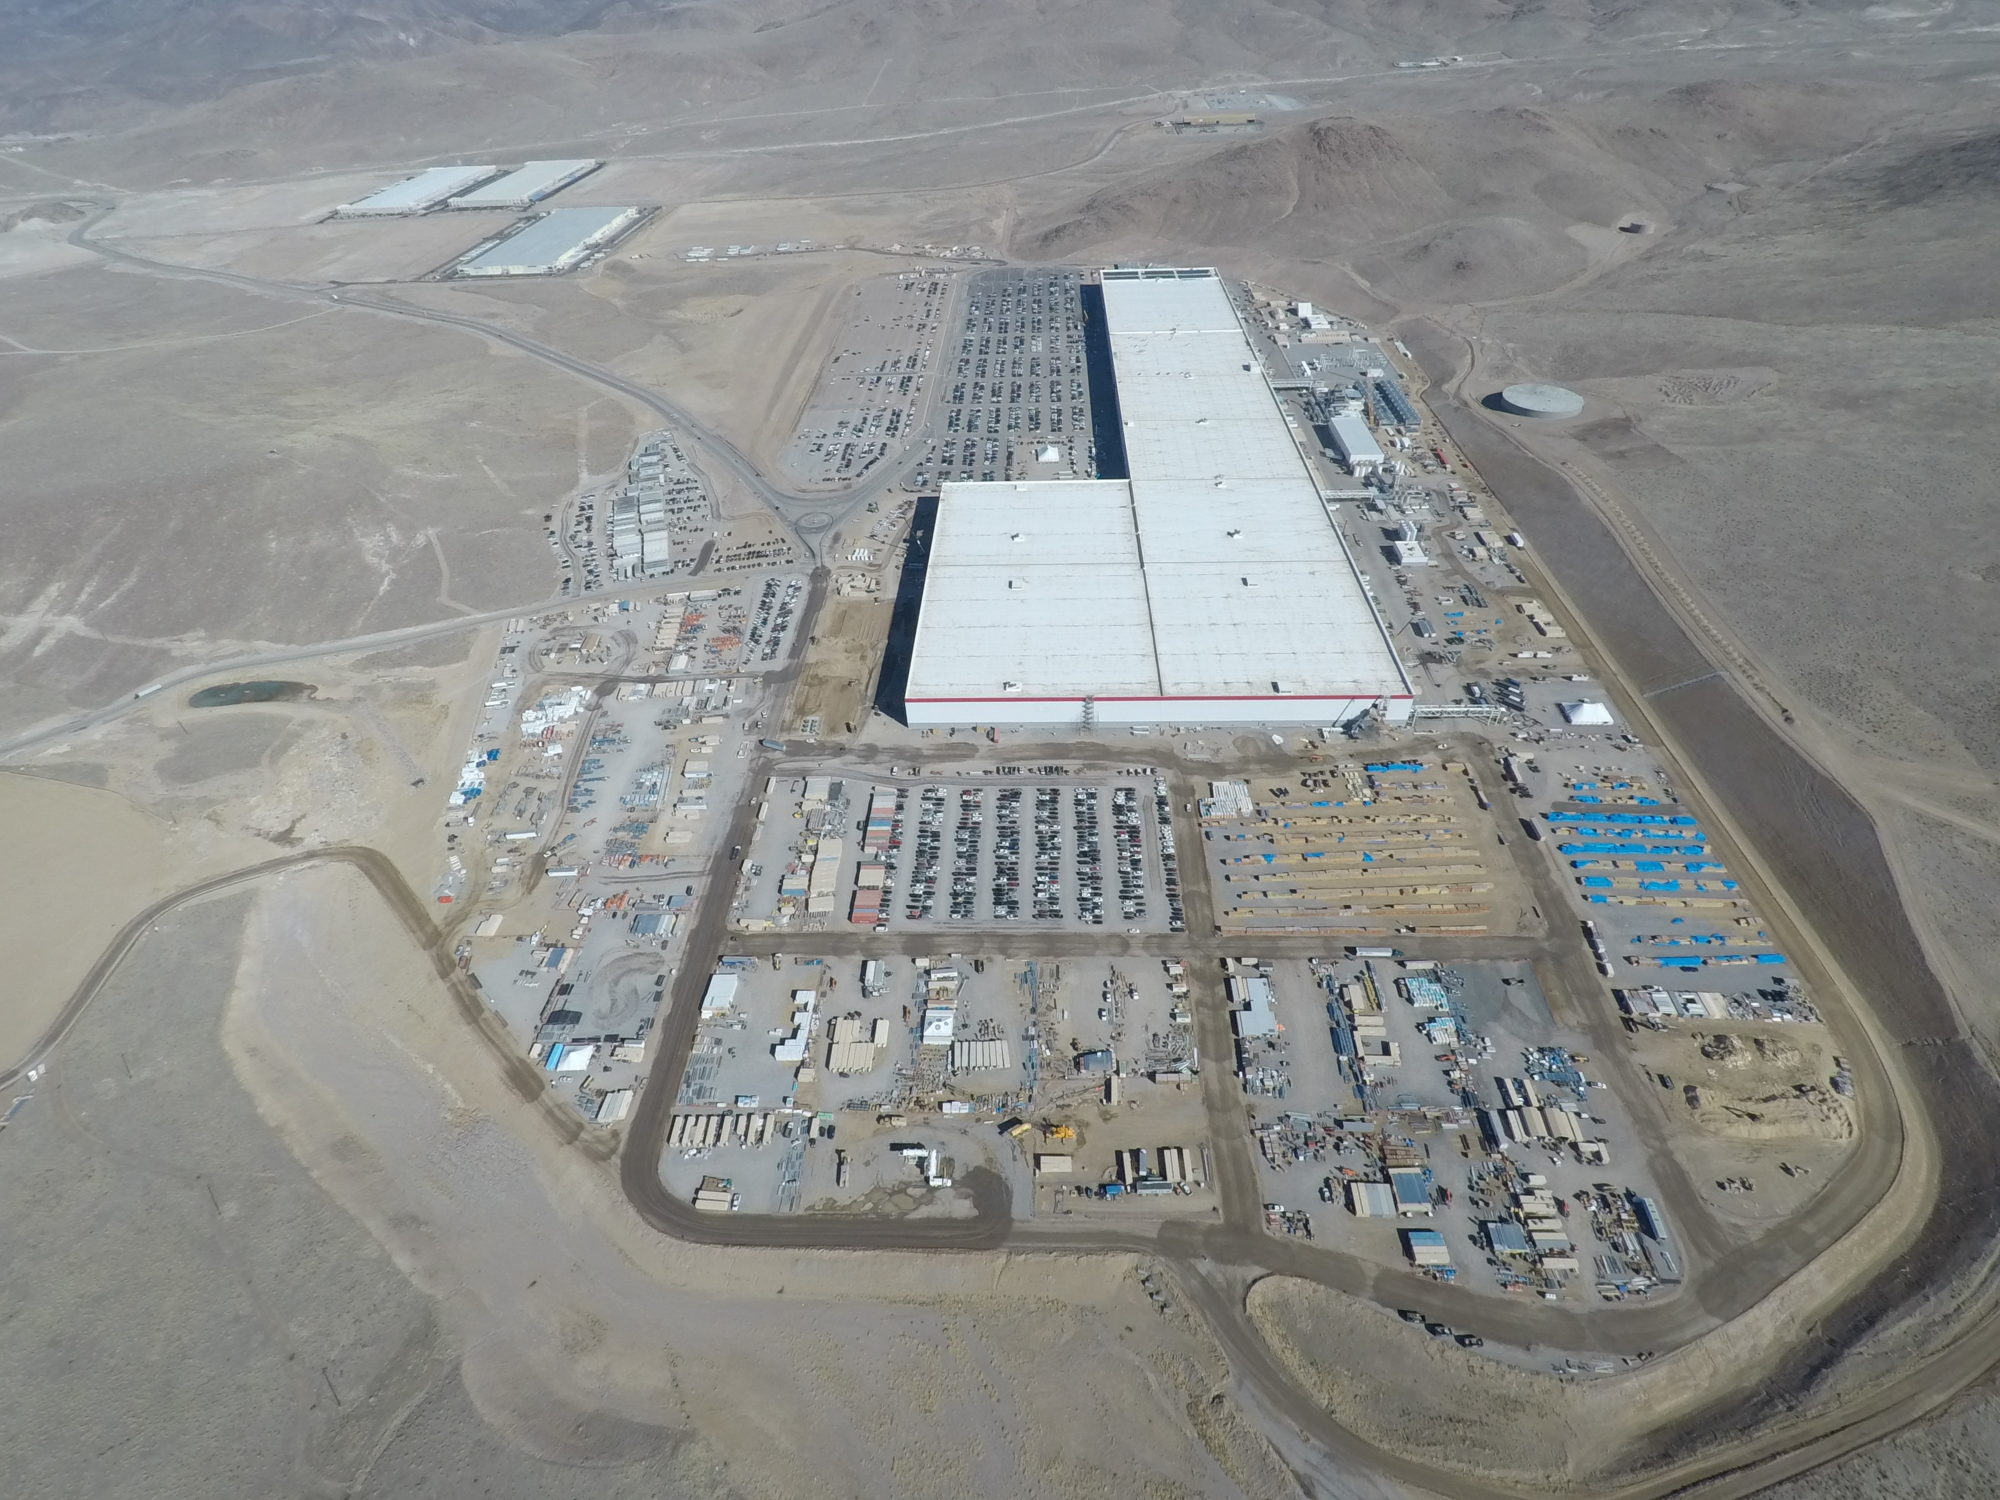 Tesla GIgafactory 1 as of March 12, 2018 (3) [Credit: Teslarati]